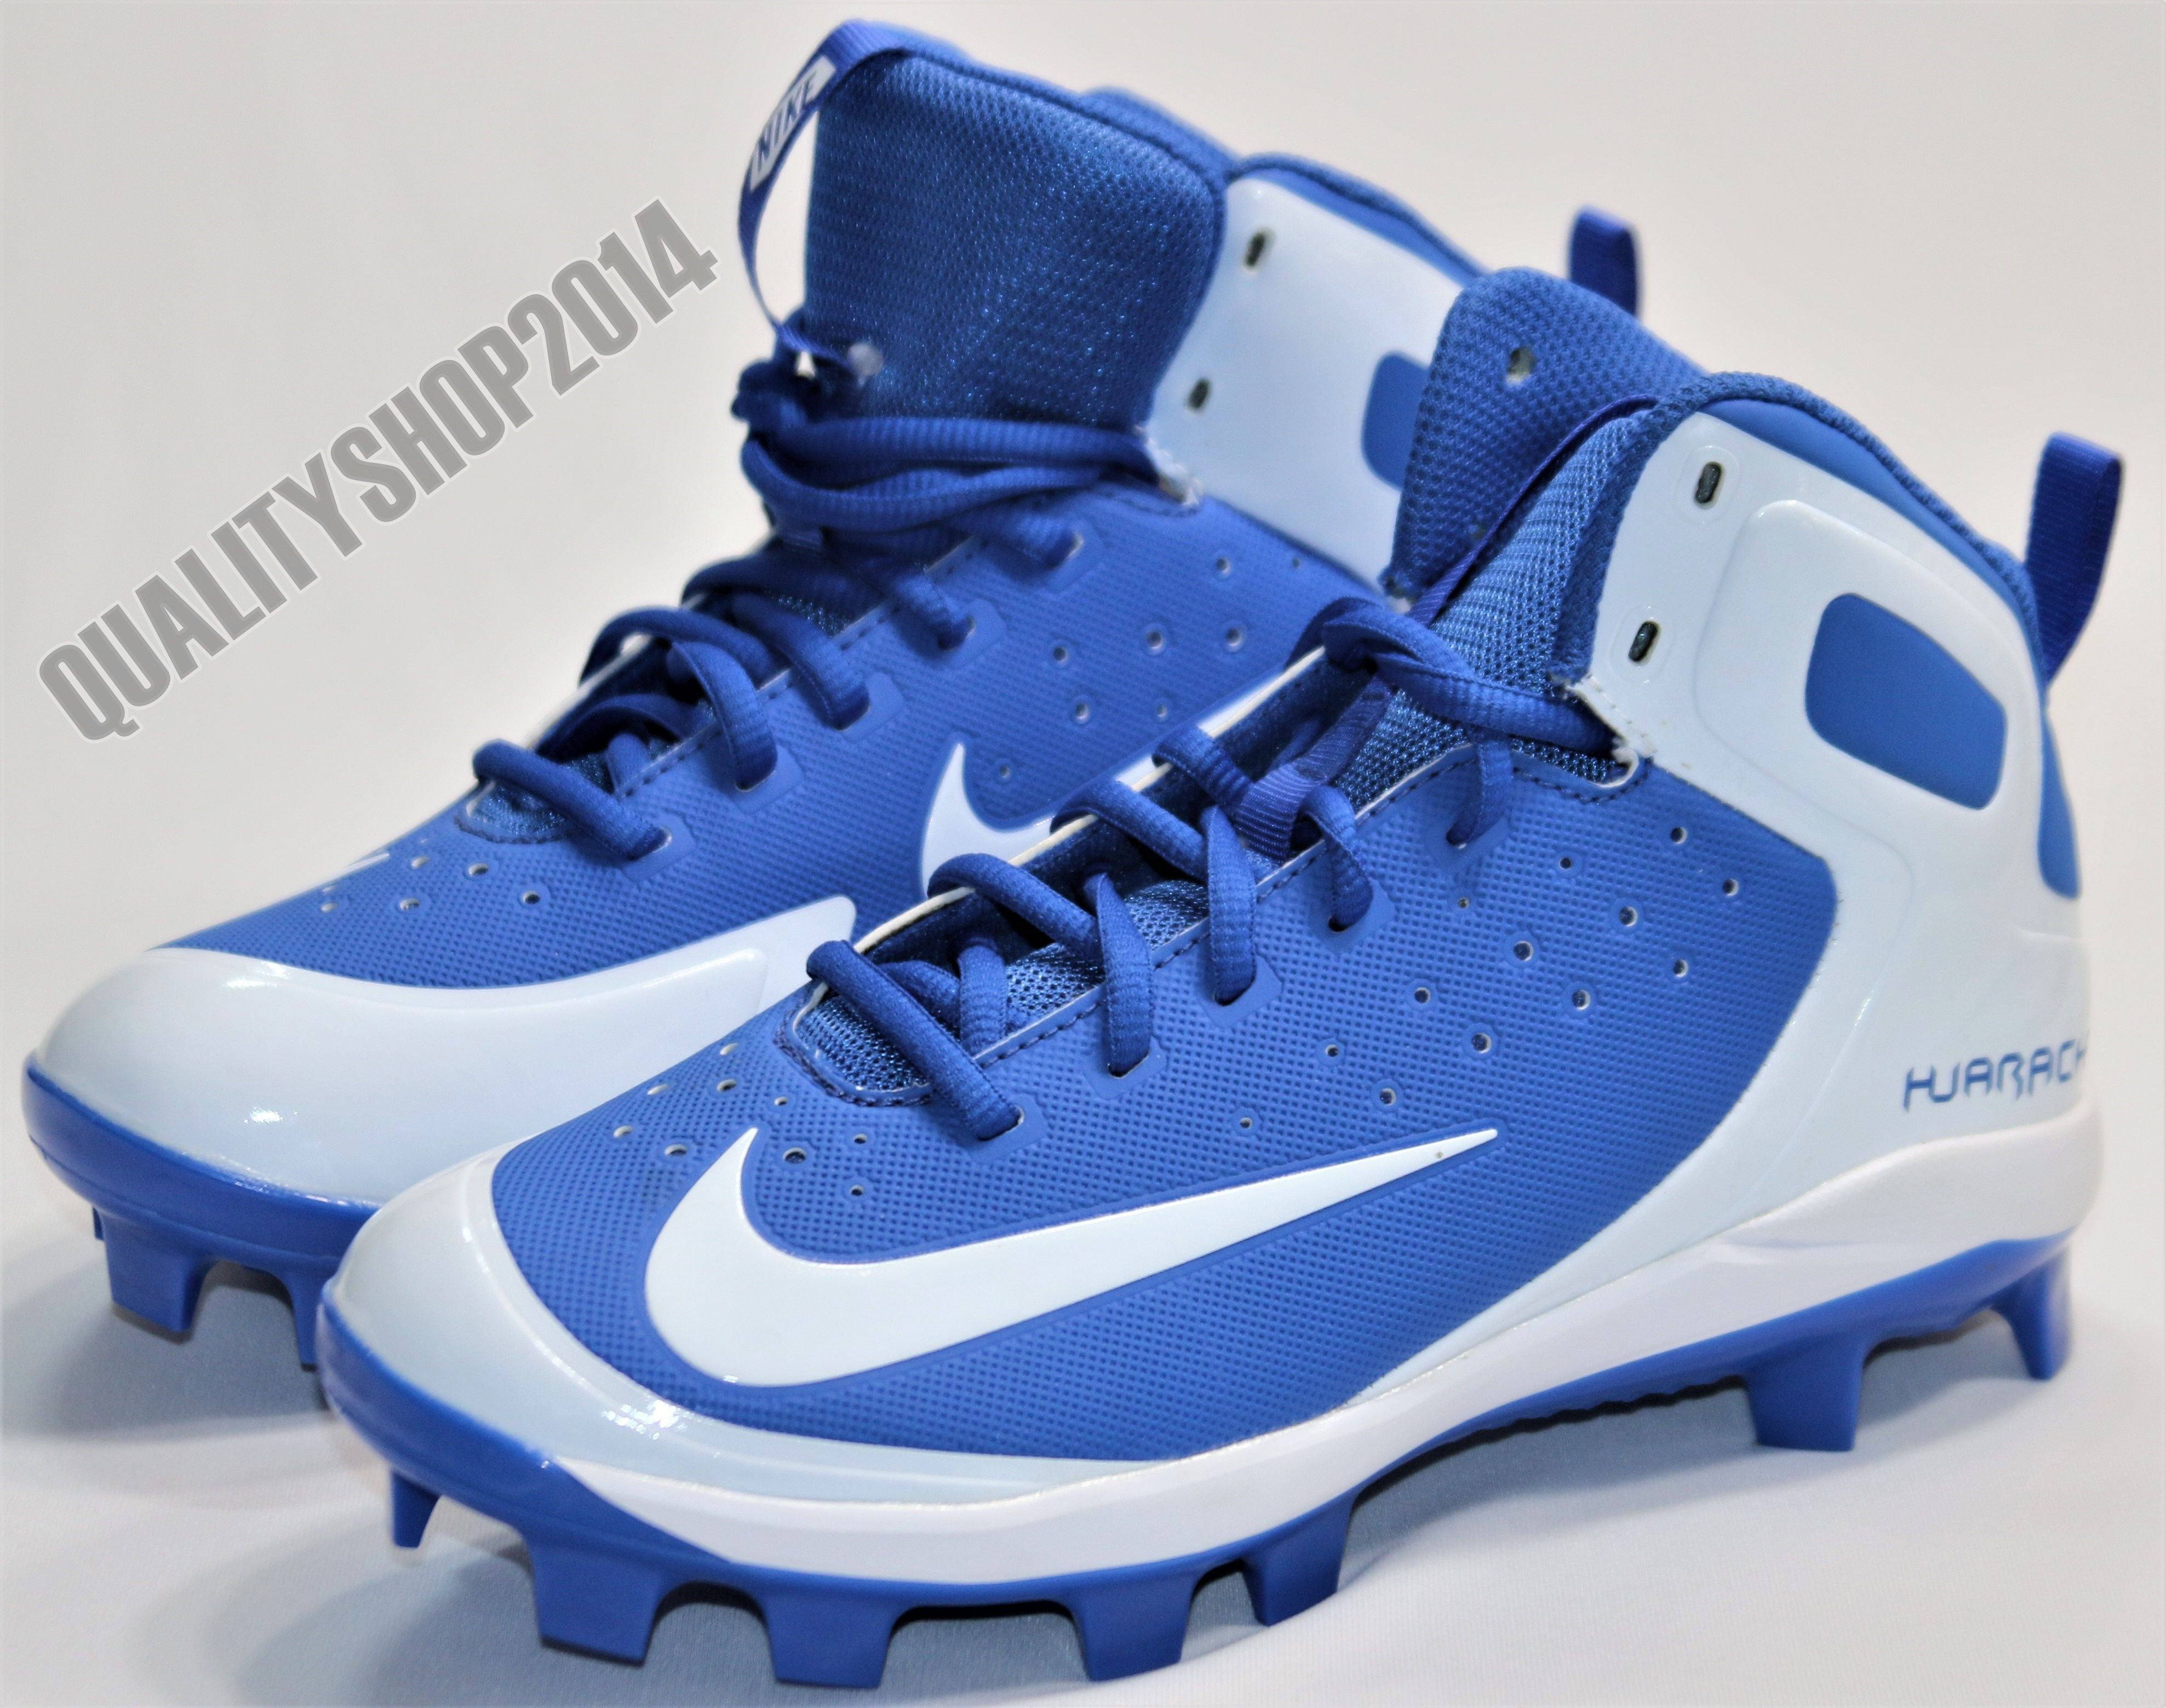 red nike youth football cleats